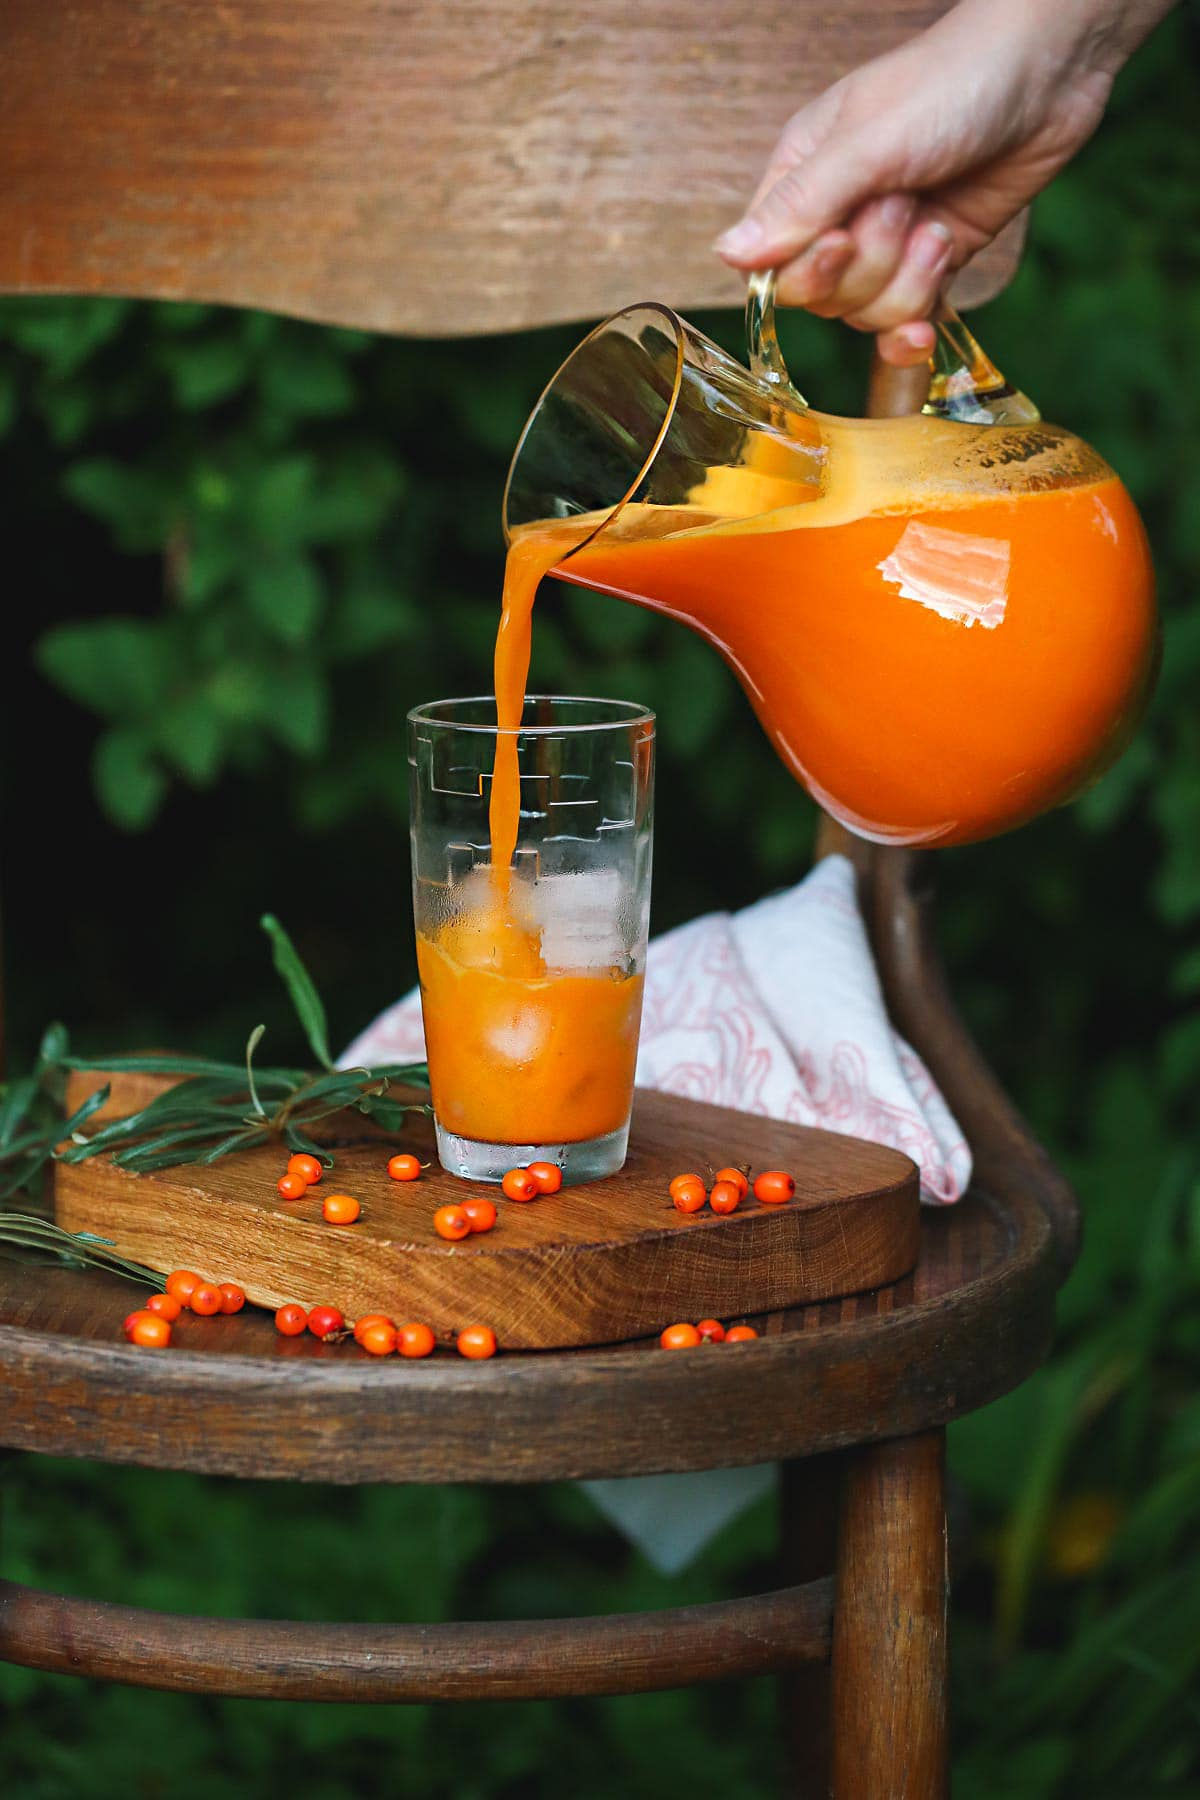 Pouring sea buckthorn juice from a jug into a glass placed on a wooden board